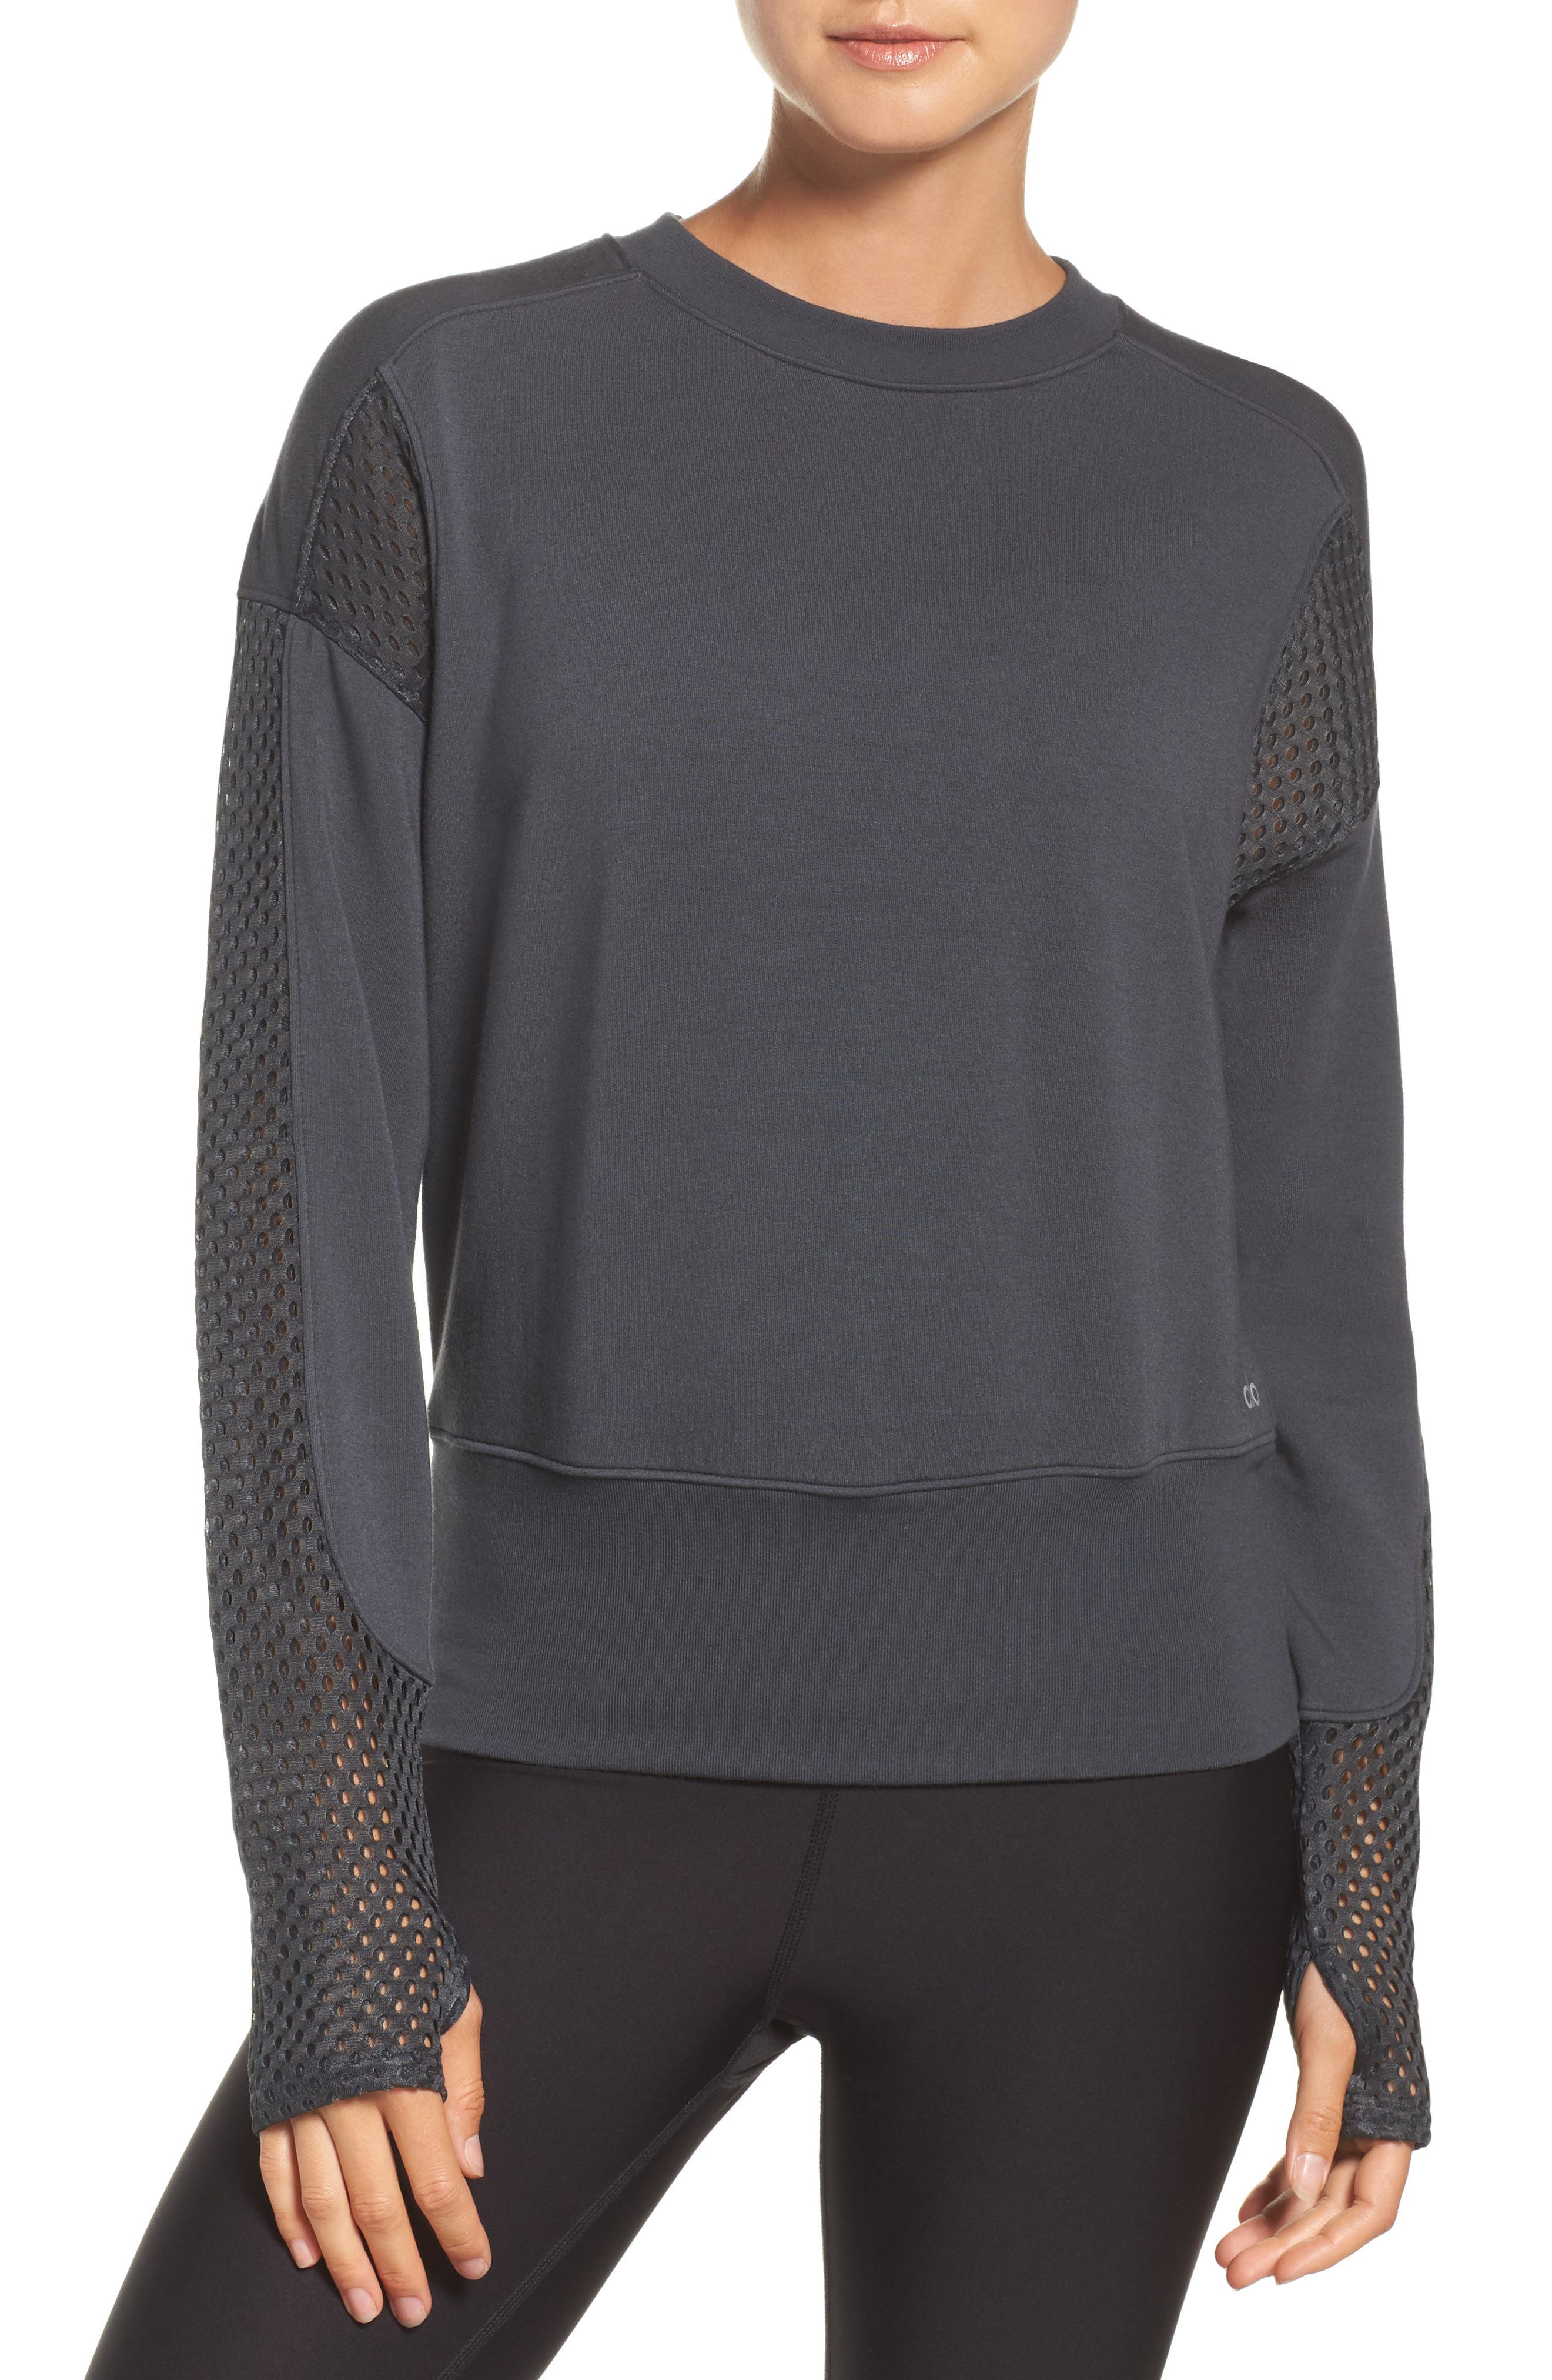 Formation Pullover,                         Main,                         color, Anthracite